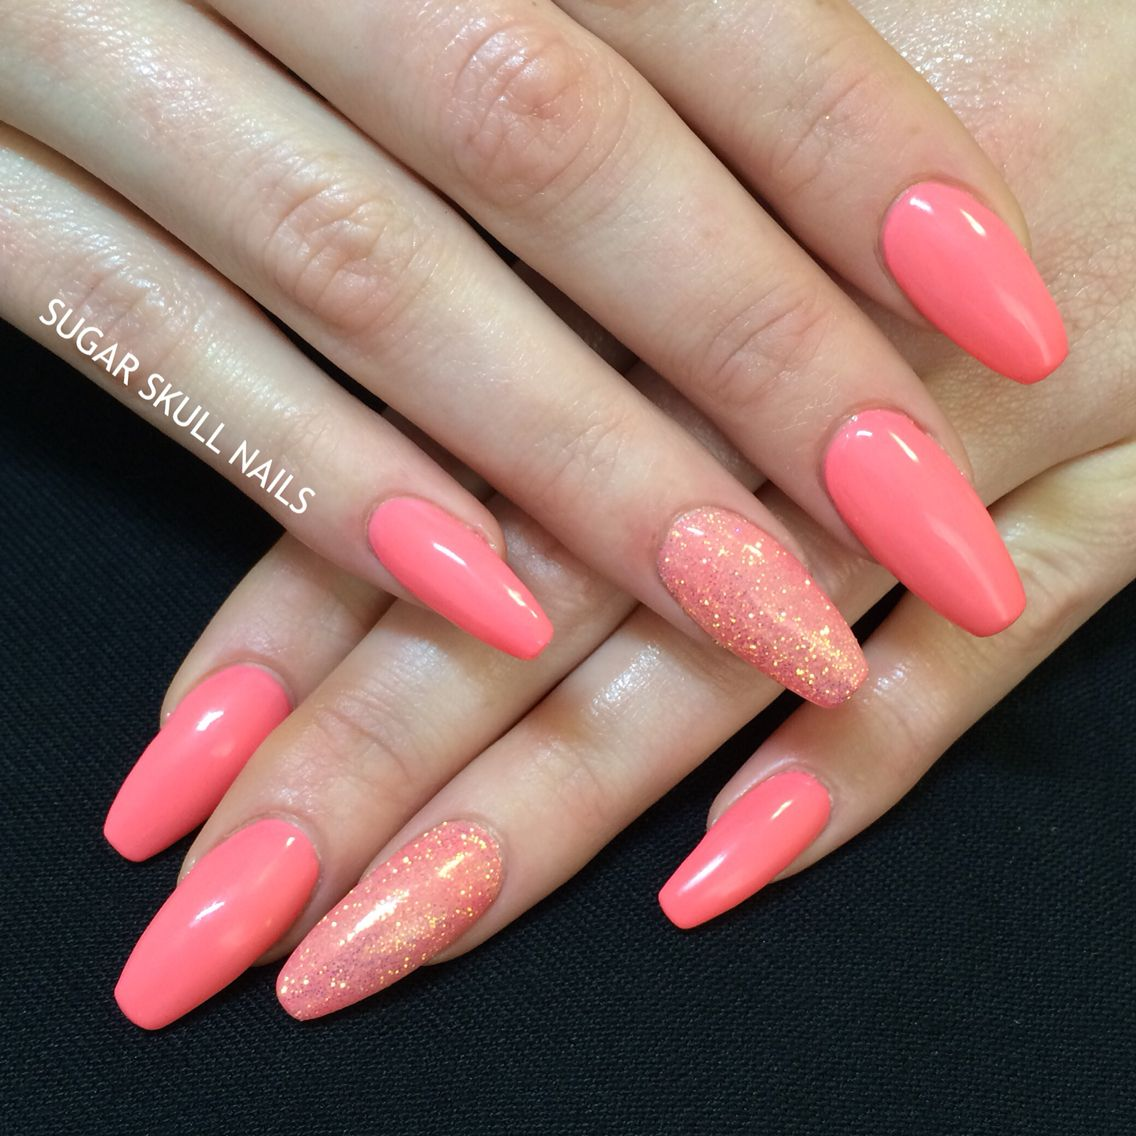 Coral And Glitter On Coffin Nails Coral Nails Glitter Coral Nails Trendy Nails